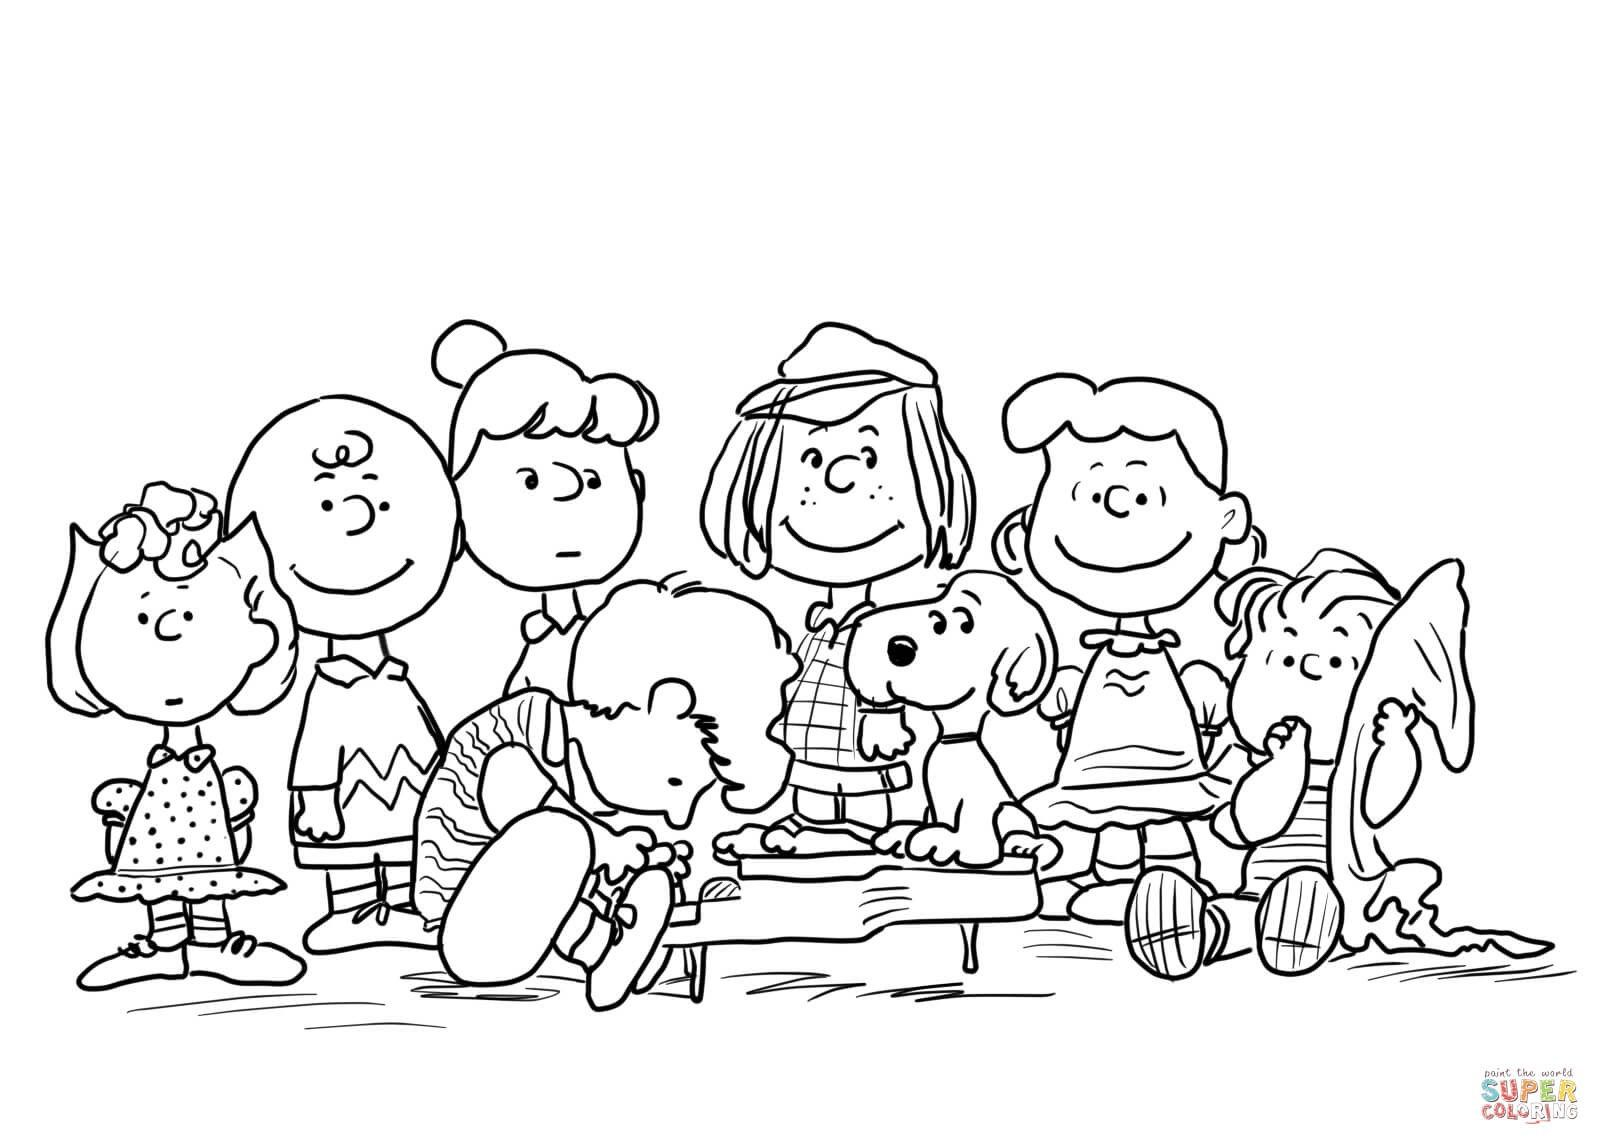 25+ Best Image of Peanuts Coloring Pages Thanksgiving